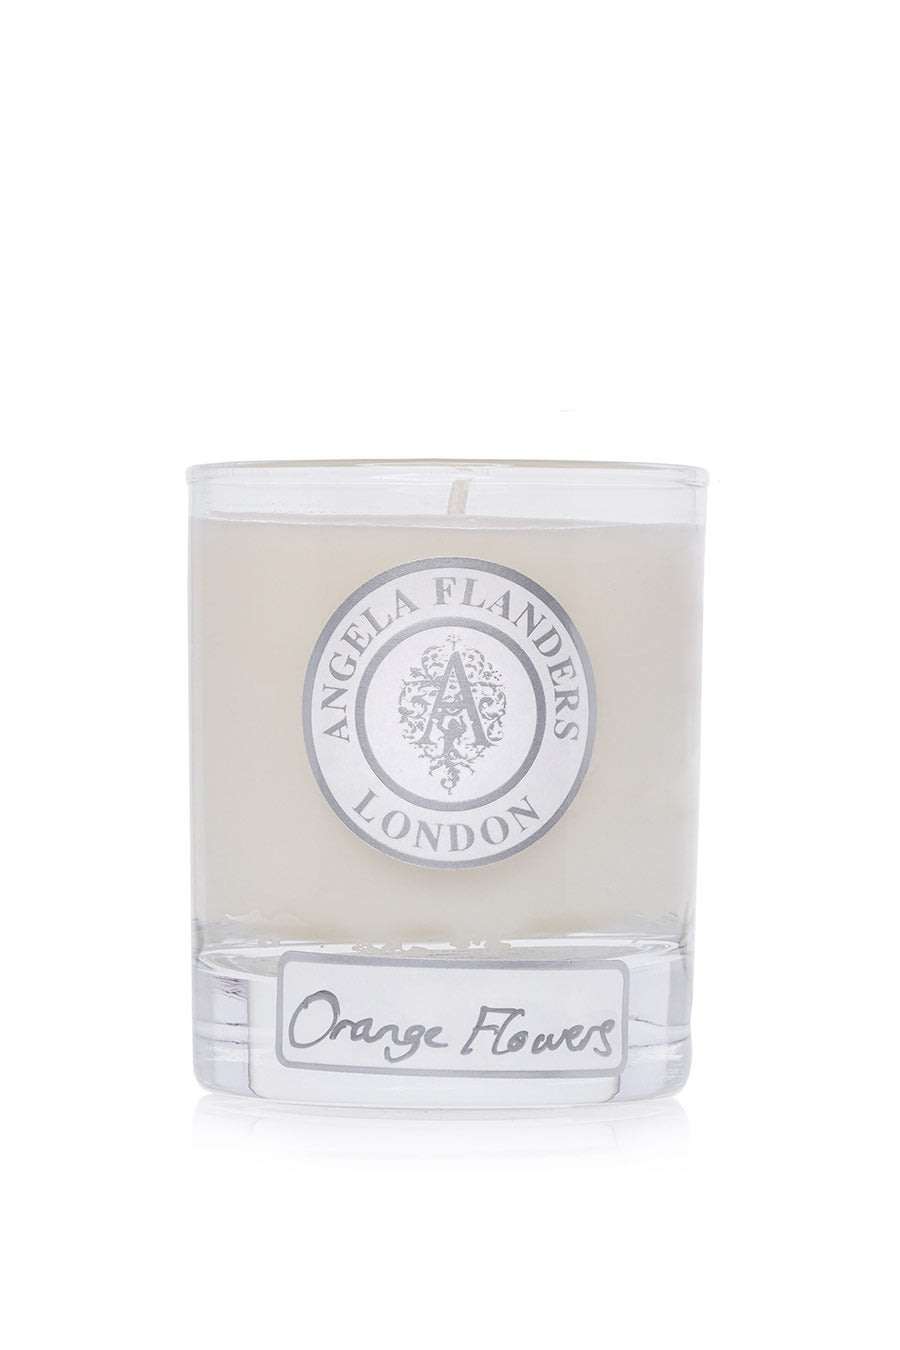 Angela Flanders Orange Blossom Candle